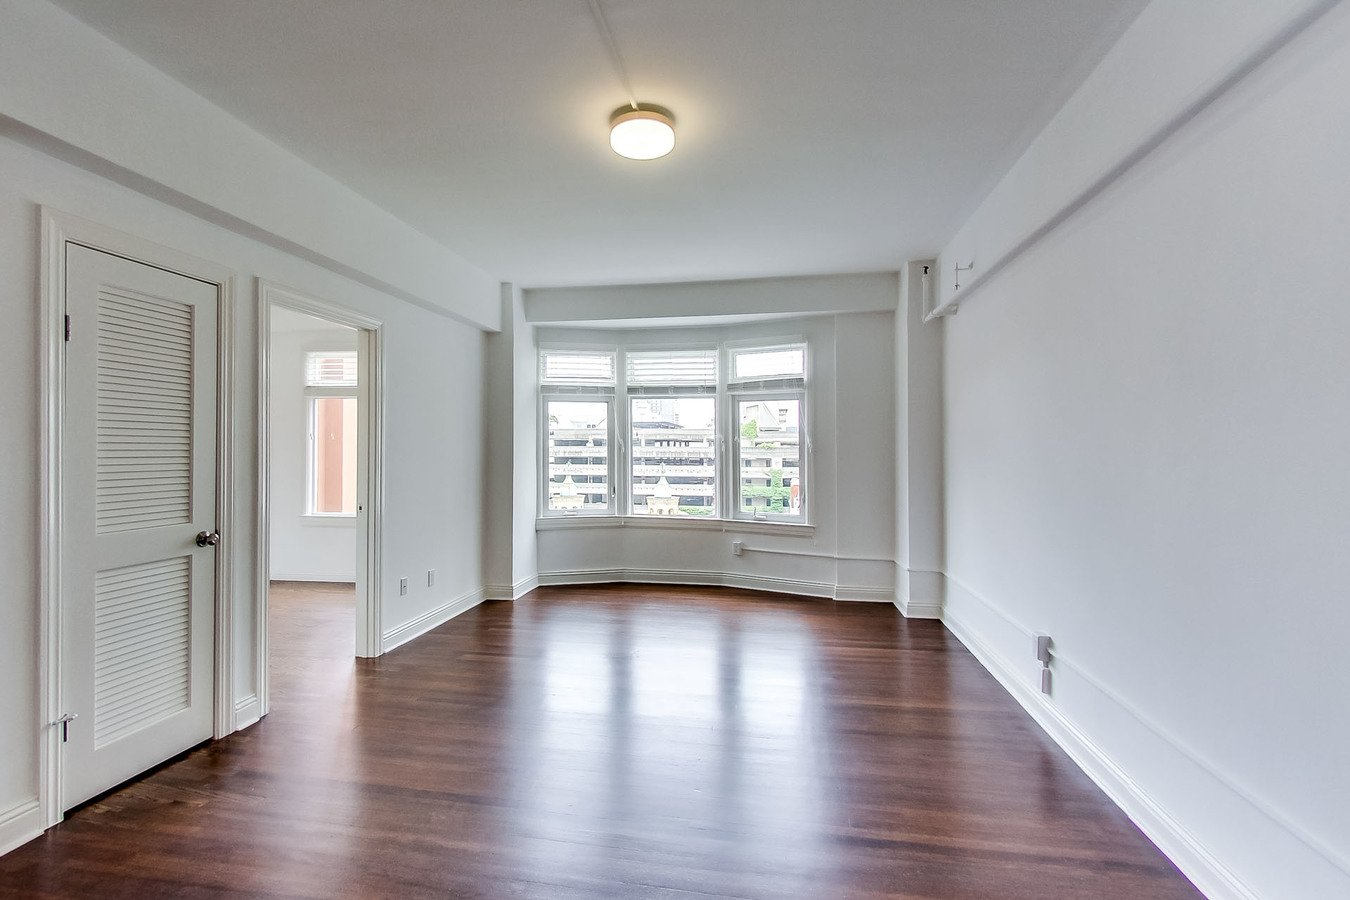 1 Bedroom 1 Bathroom Apartment for rent at 665 Pine Apartments in San Francisco, CA